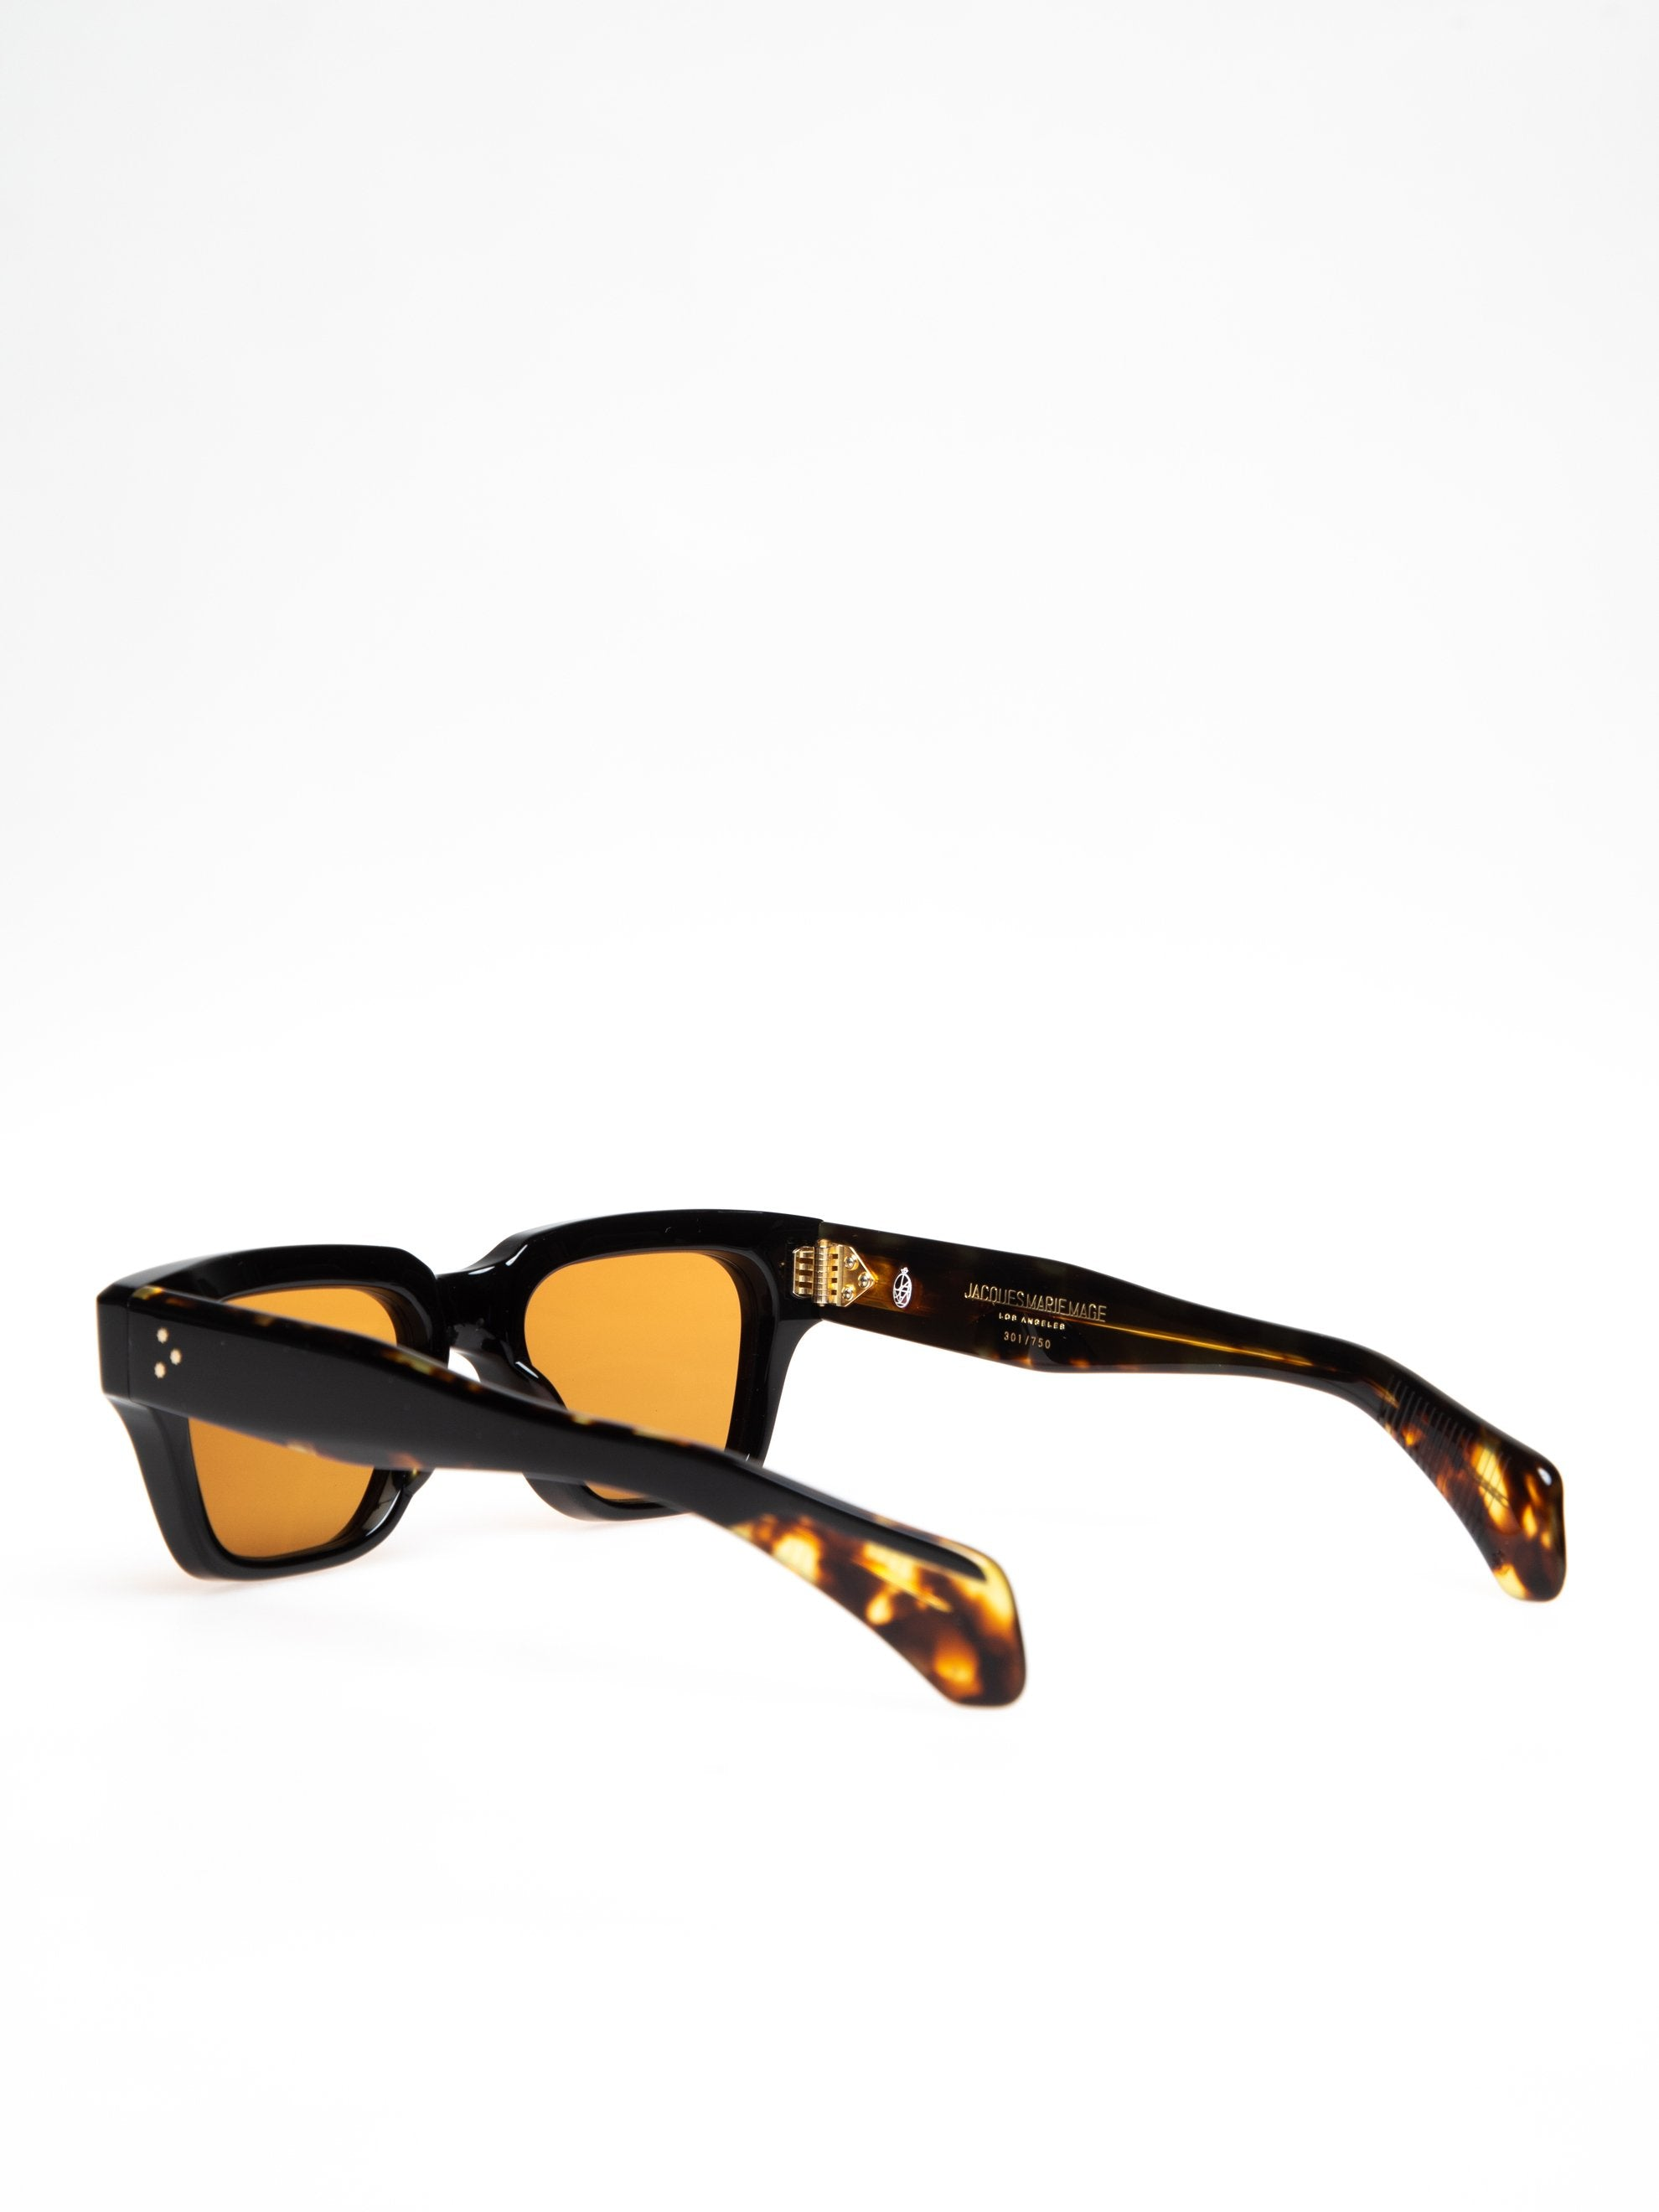 Orange CR39/ 18k Dark Gold Fellini Noir 4